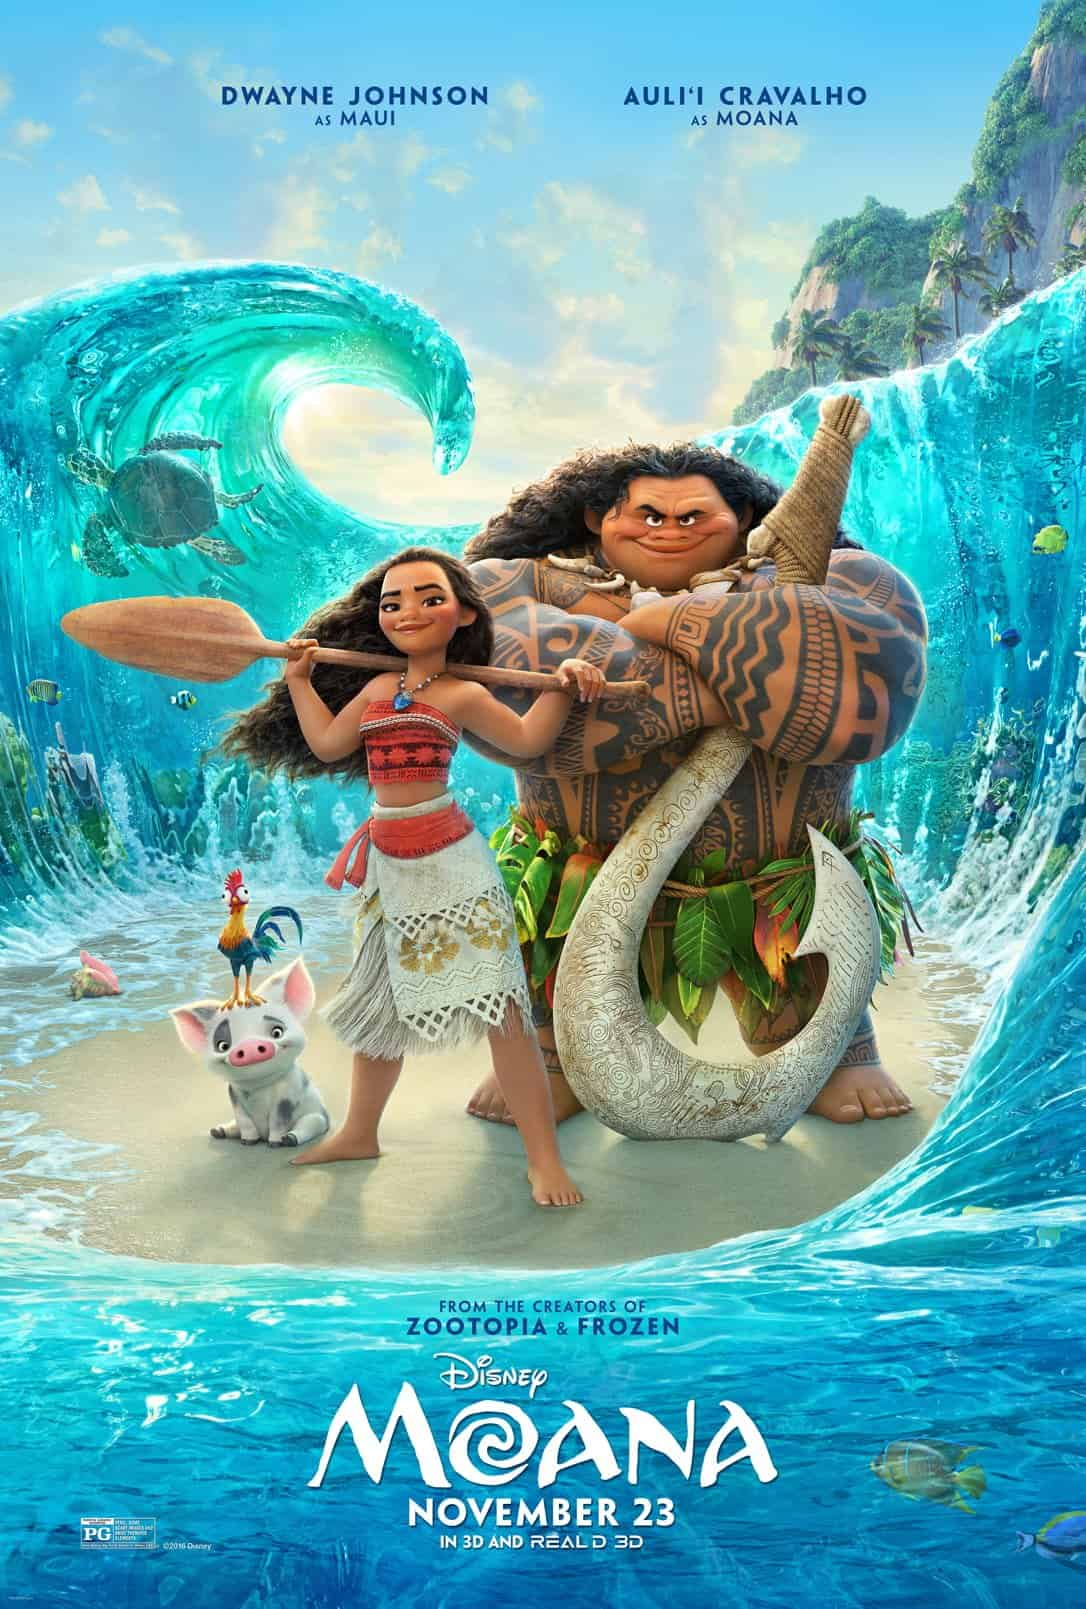 Disney First Look at Moana